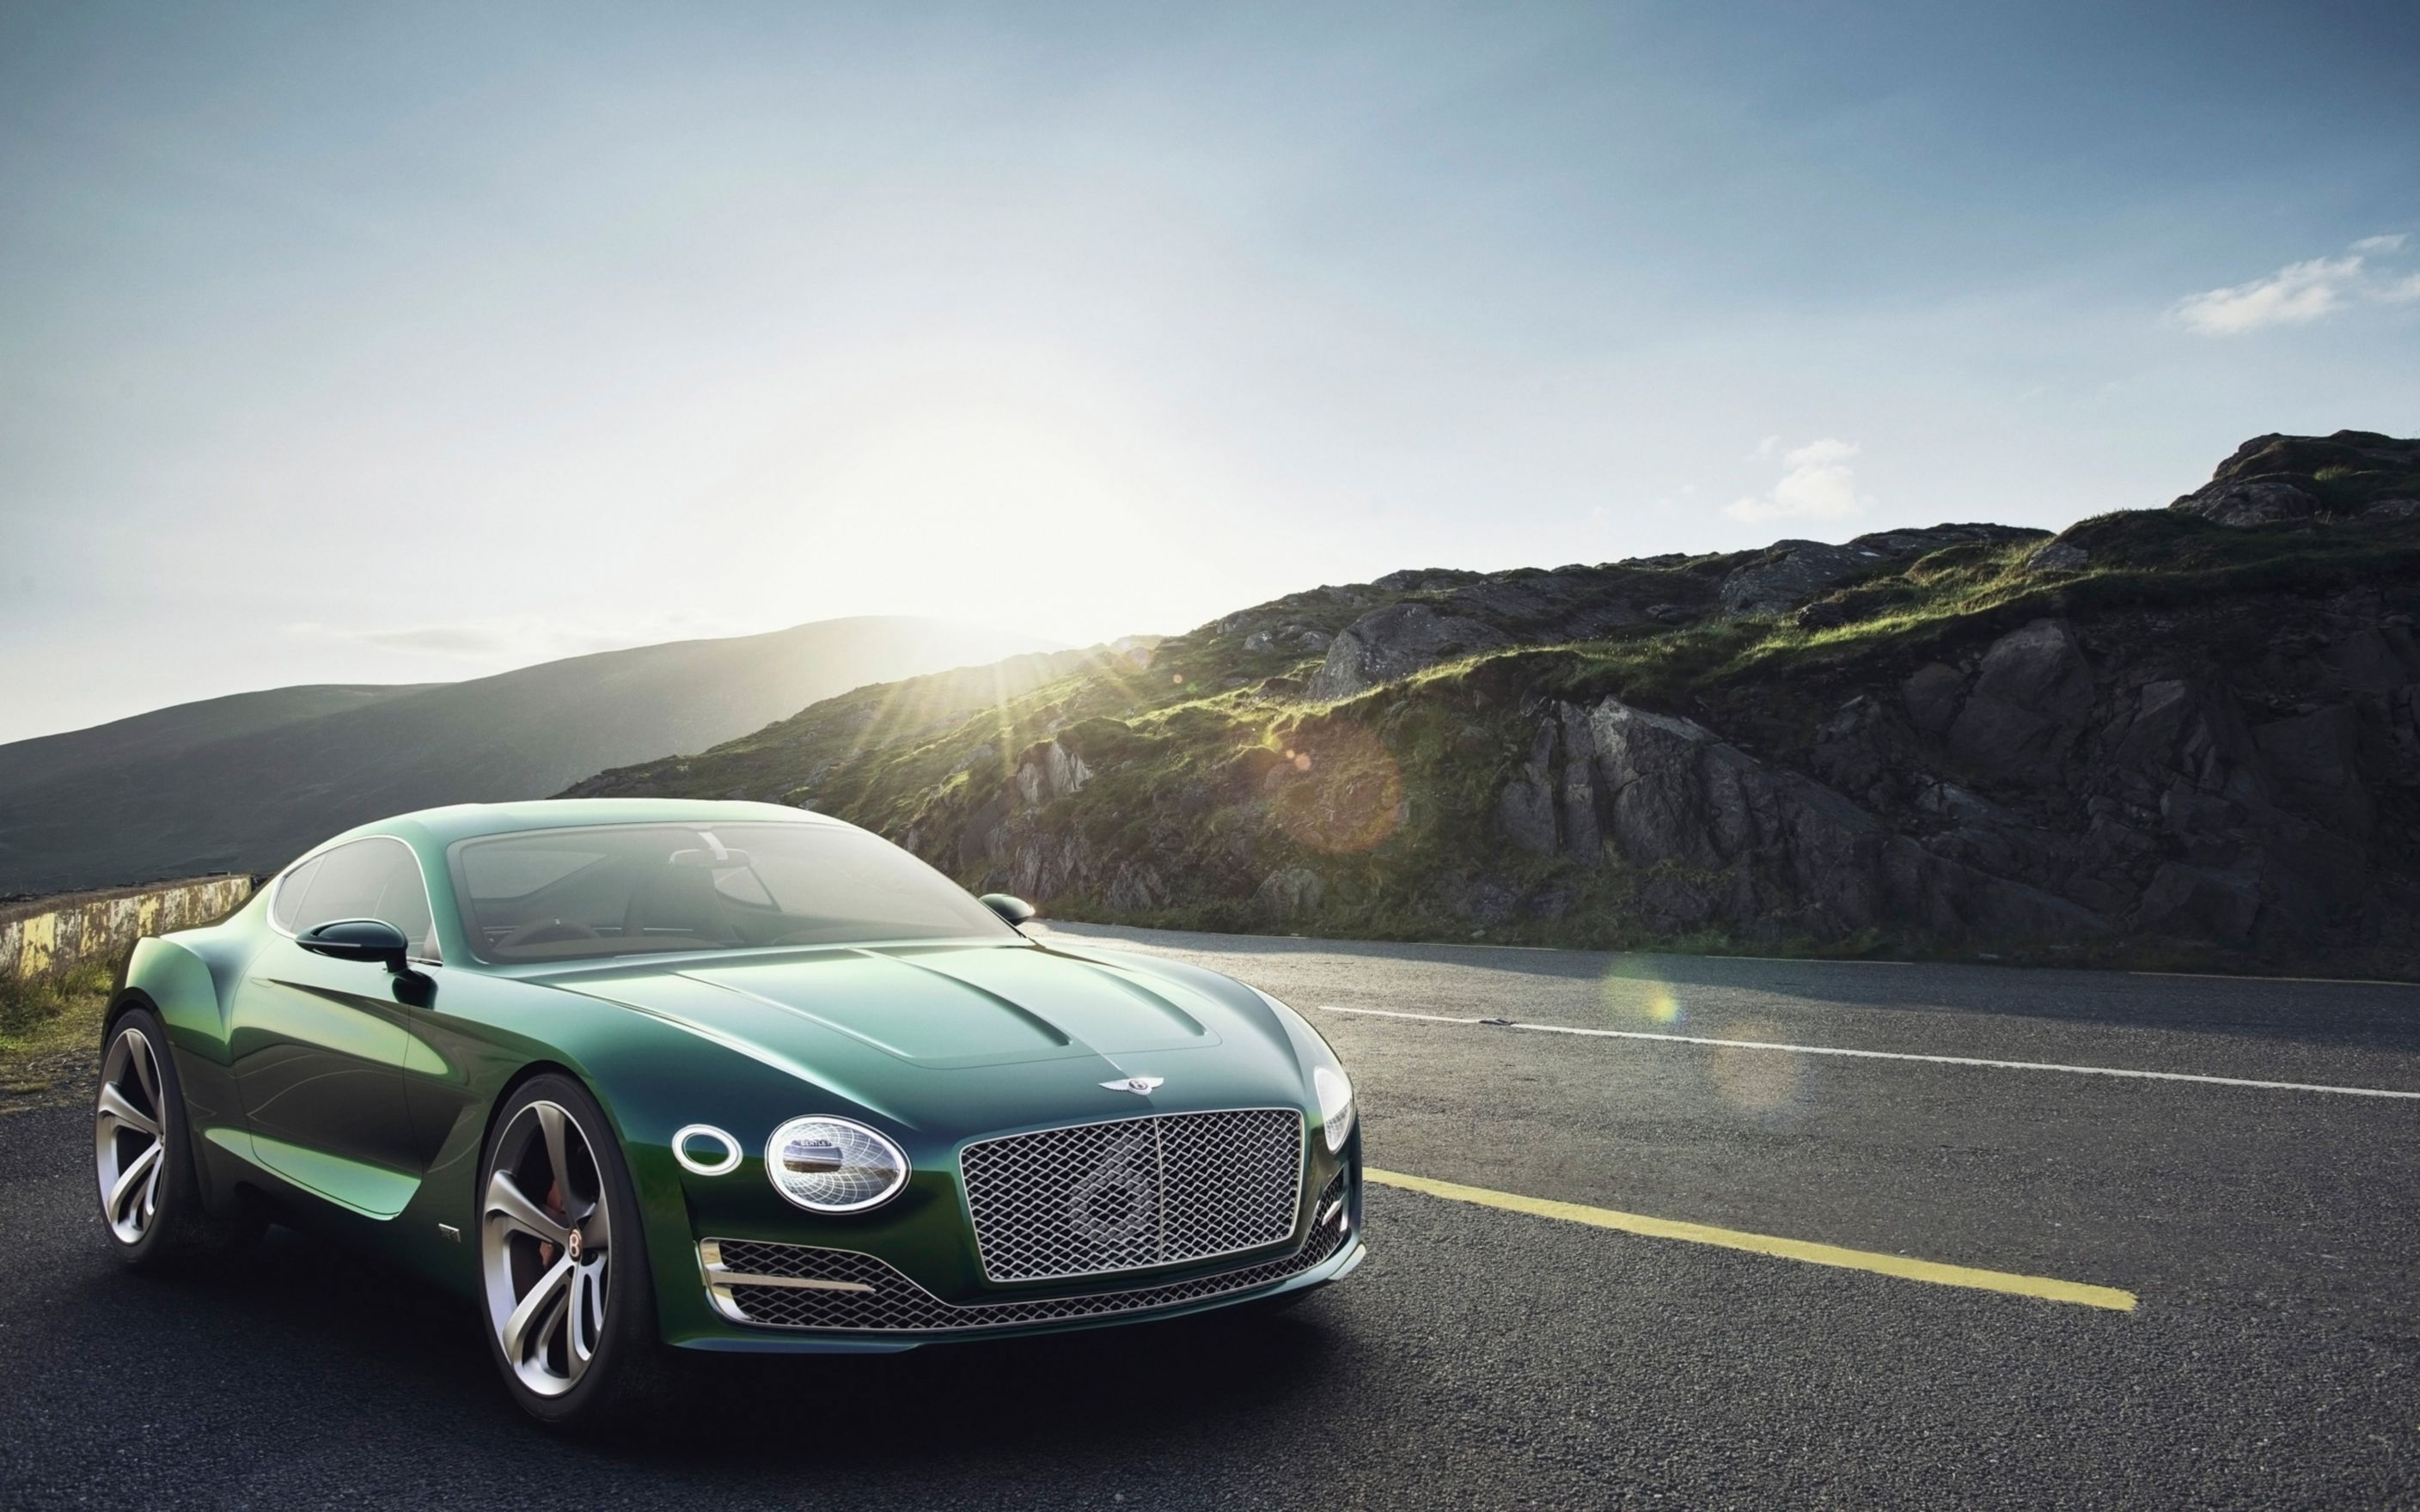 Download free HD 2015 Bentley Exp 10 Speed 6 Concept Car Wide Wallpaper, image